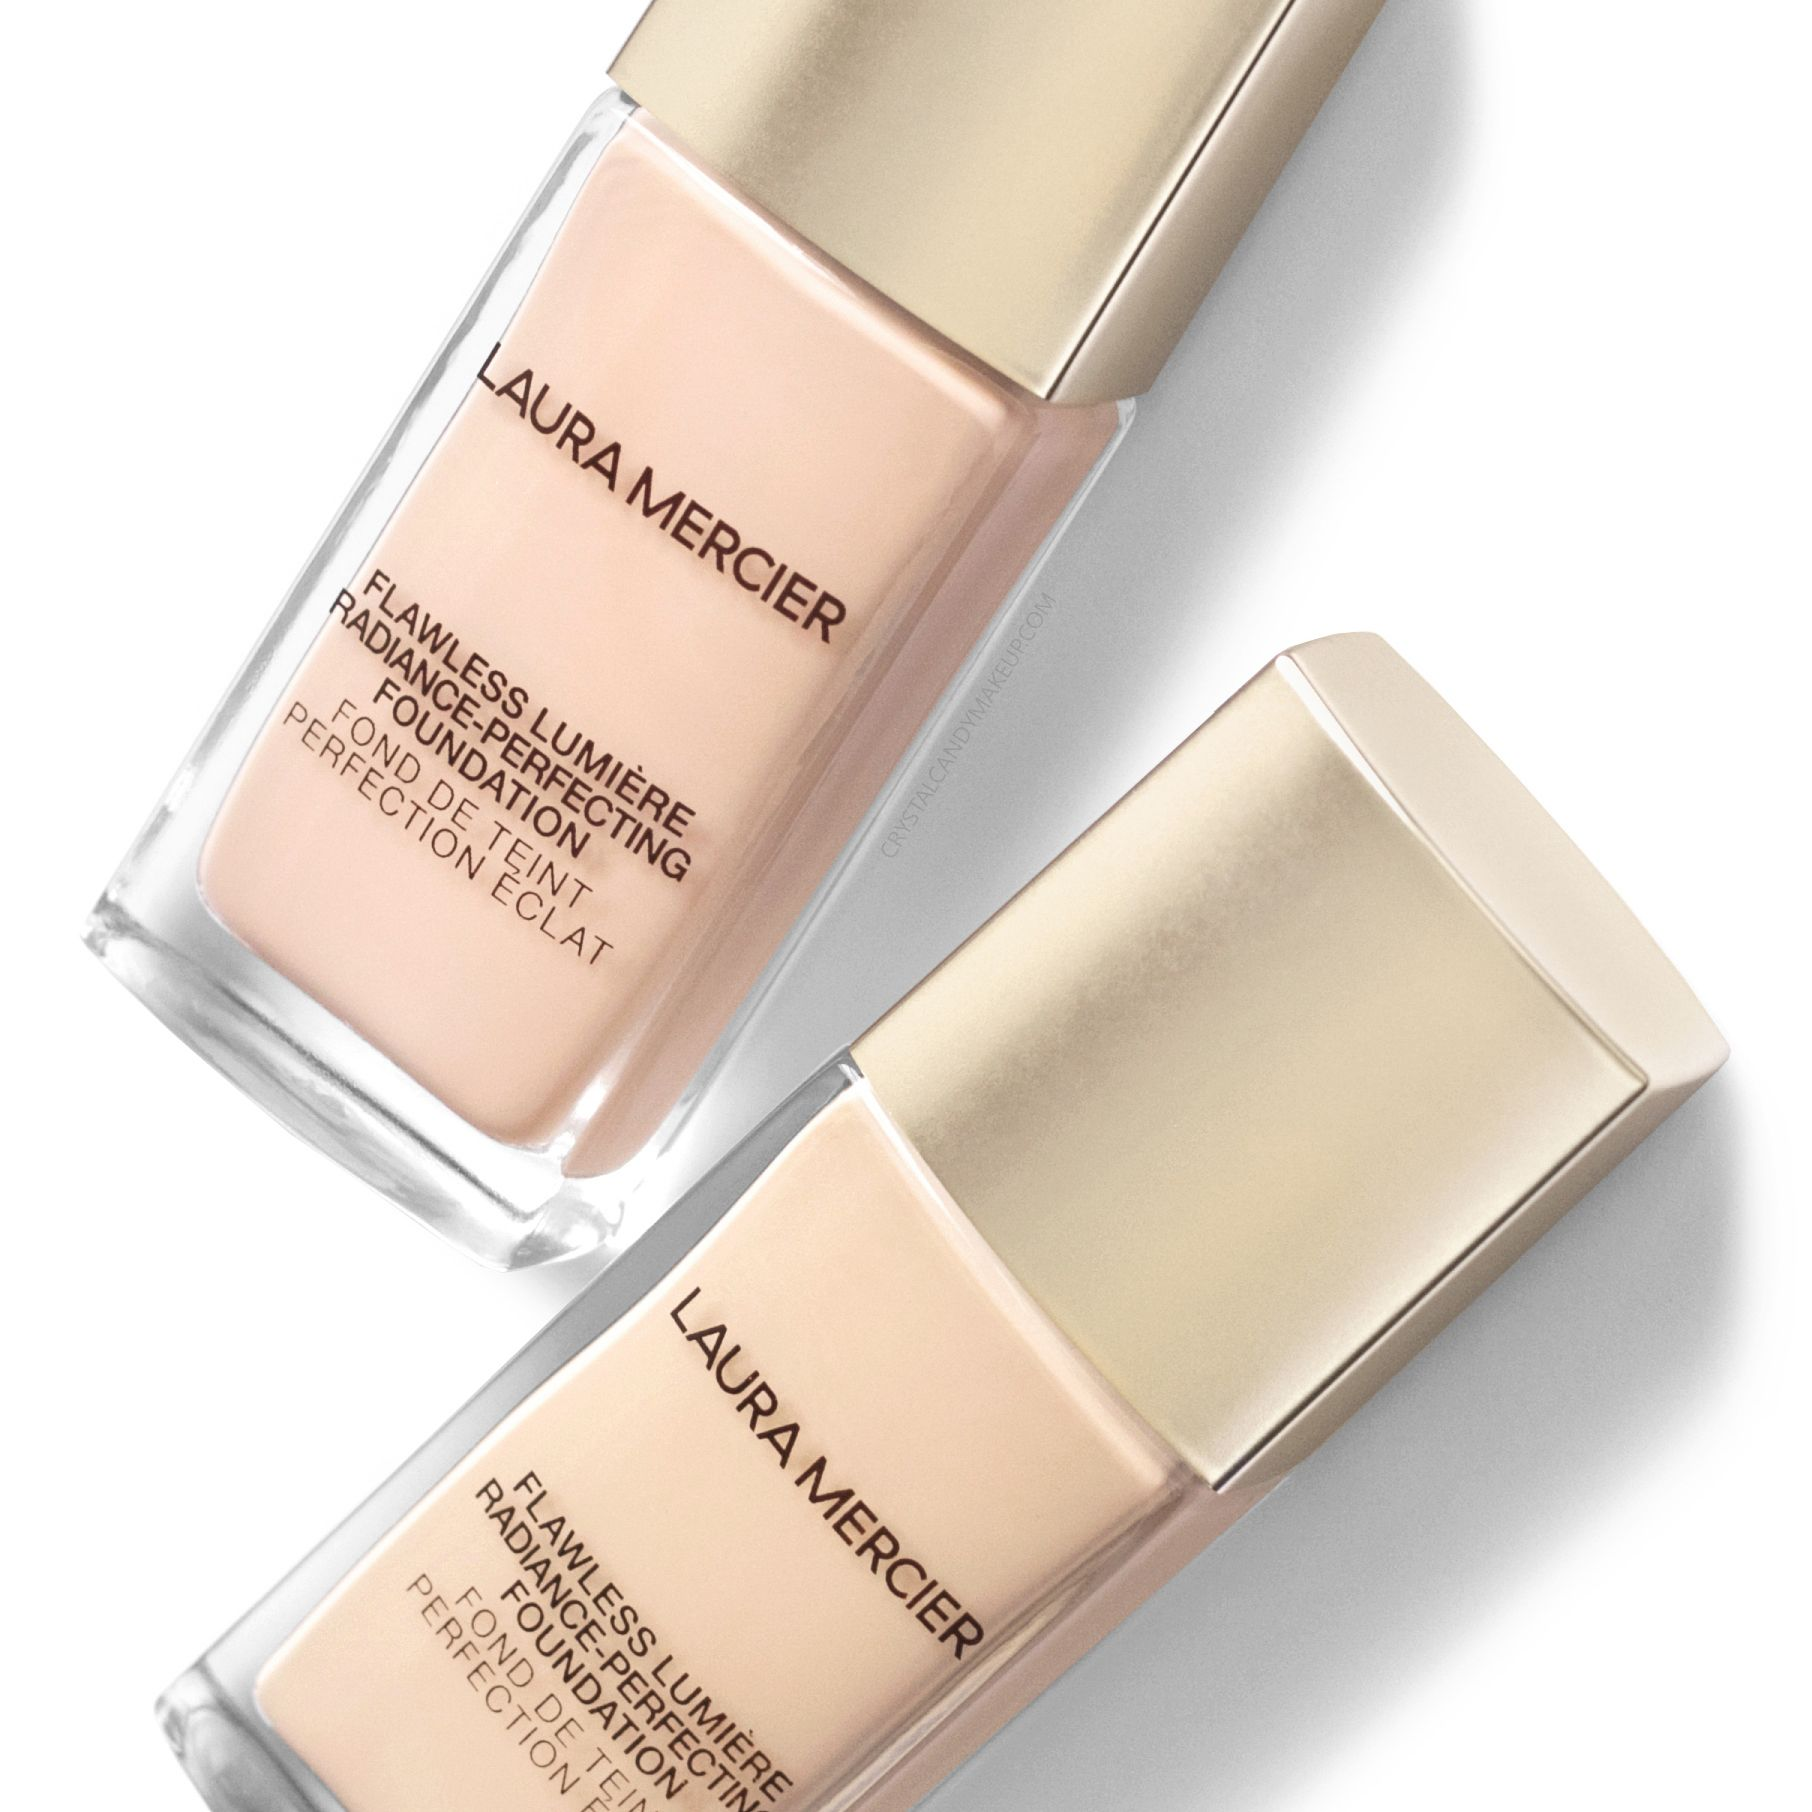 Laura Mercier's new Flawless Lumière Foundation Review